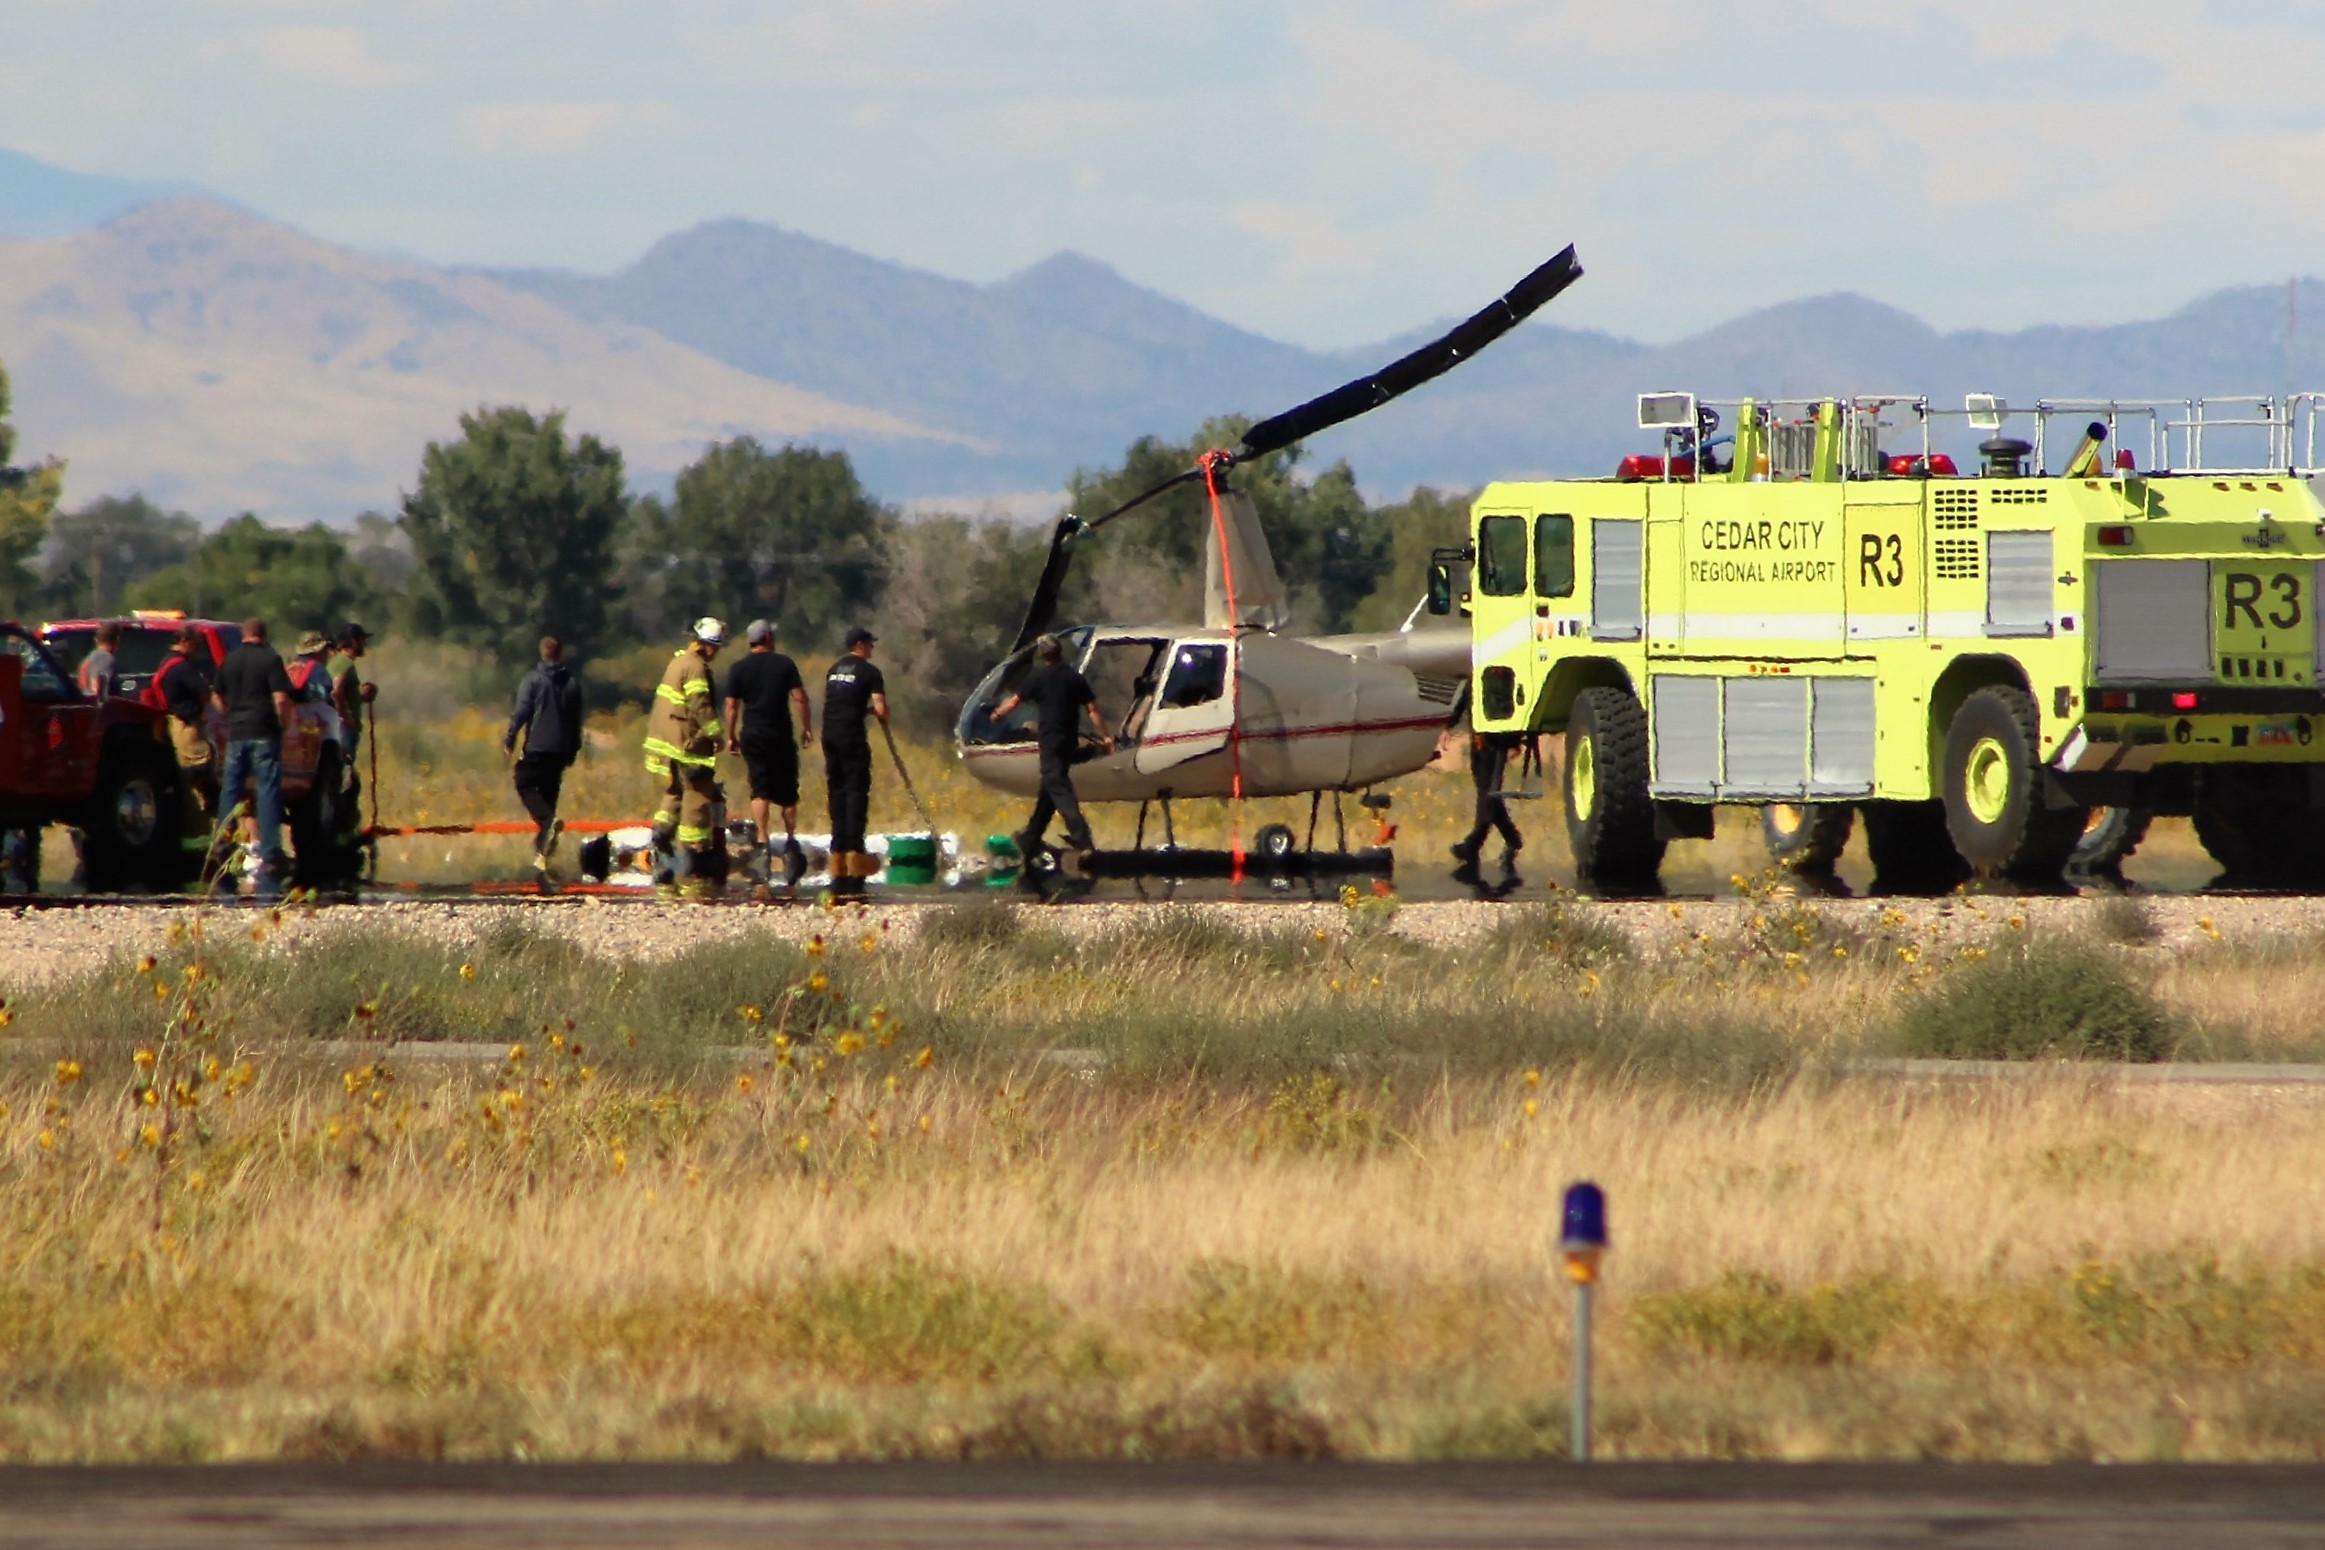 A helicopter crashed at Cedar City Airport Wednesday. Cedar City, Utah, Sept. 14, 2016 | Photo by Tracie Sullivan, St. George News